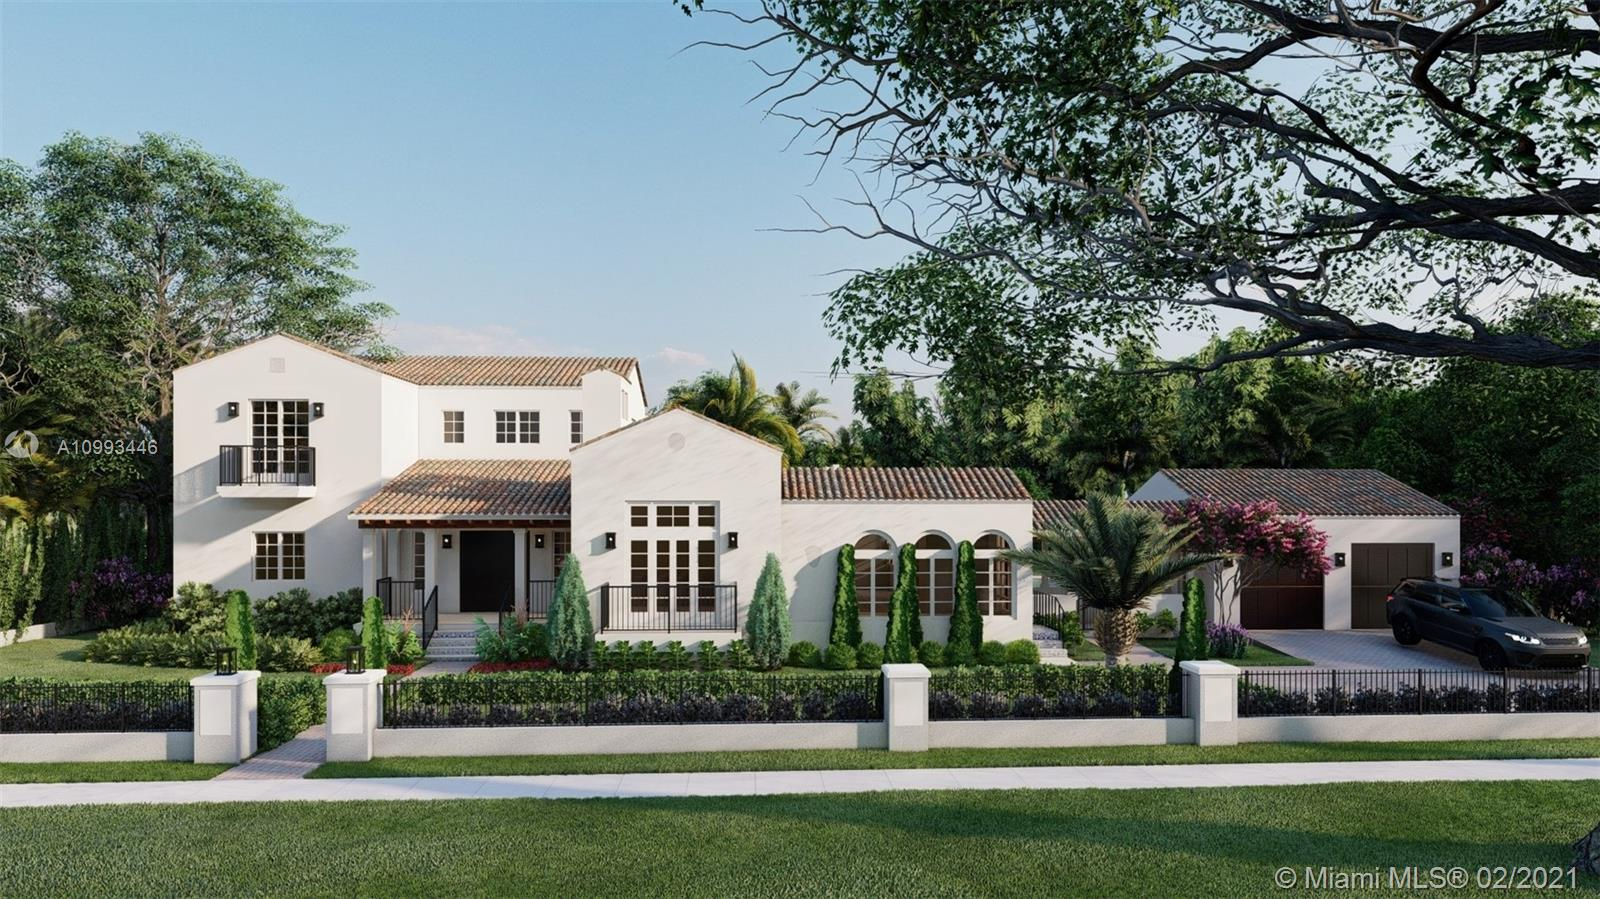 Details for 927 Valencia Ave, Coral Gables, FL 33134